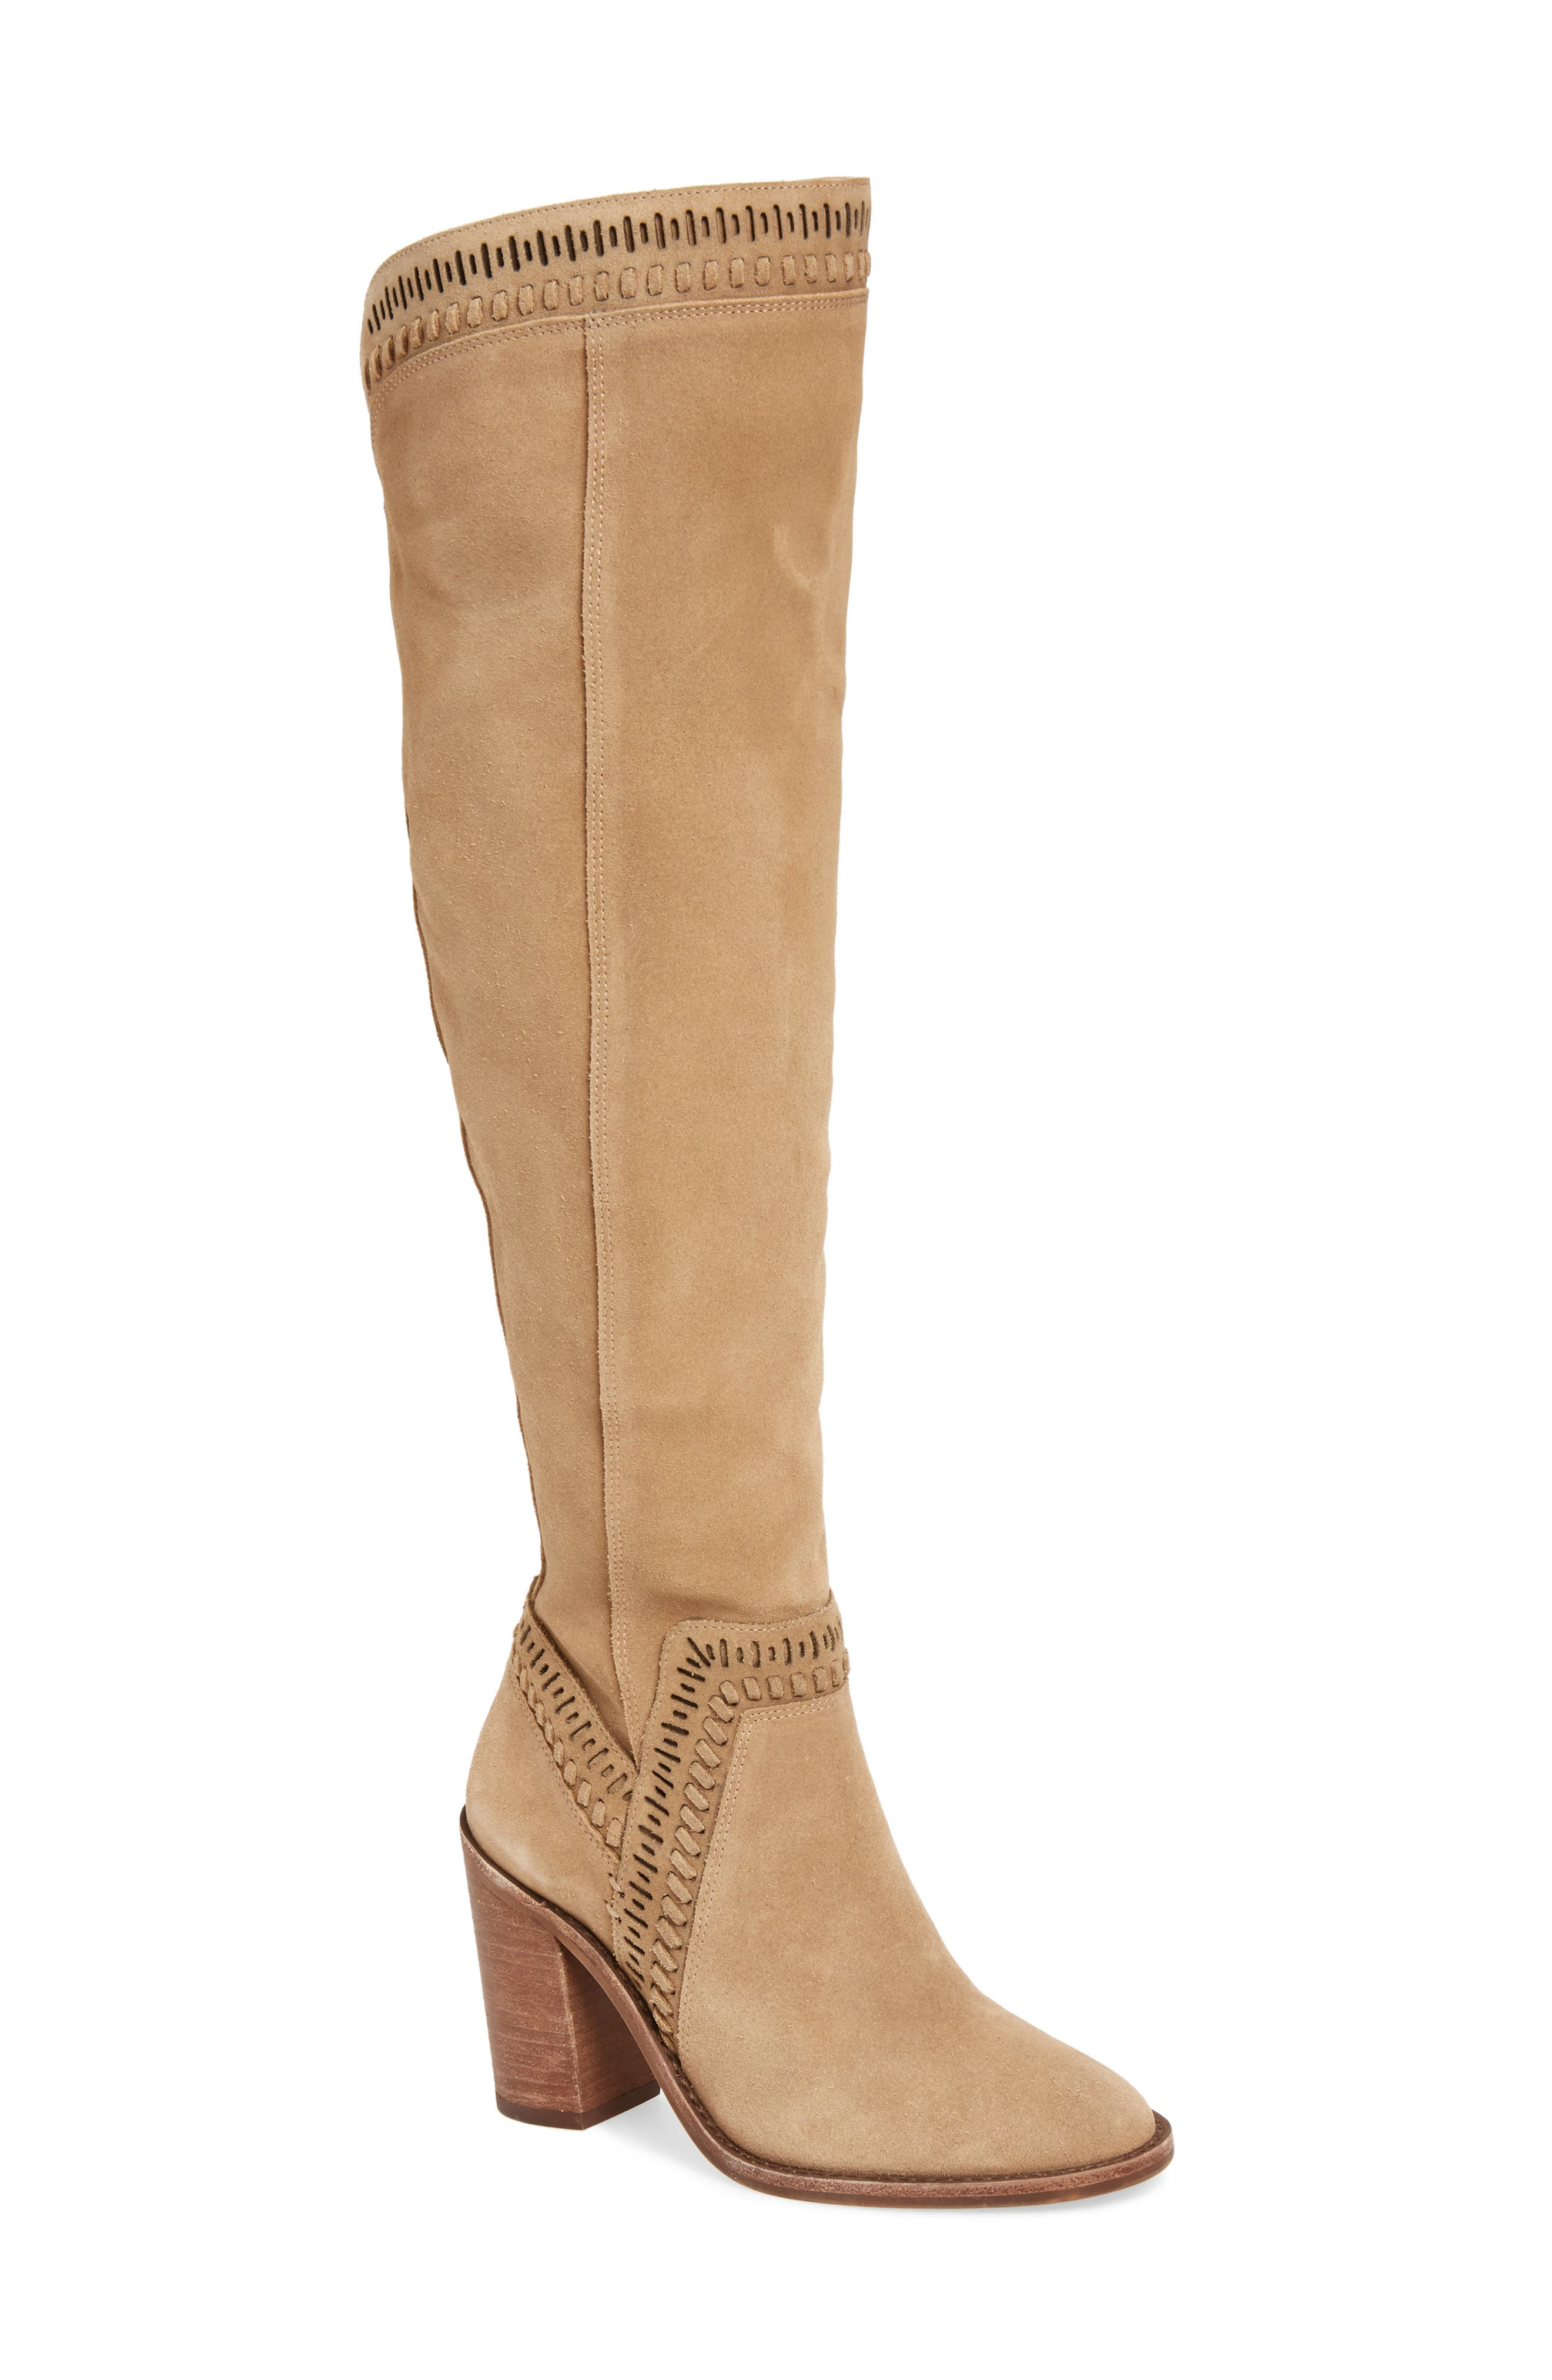 Alternate Image 1 Selected - Vince Camuto Madolee Over the Knee Boot (Women)